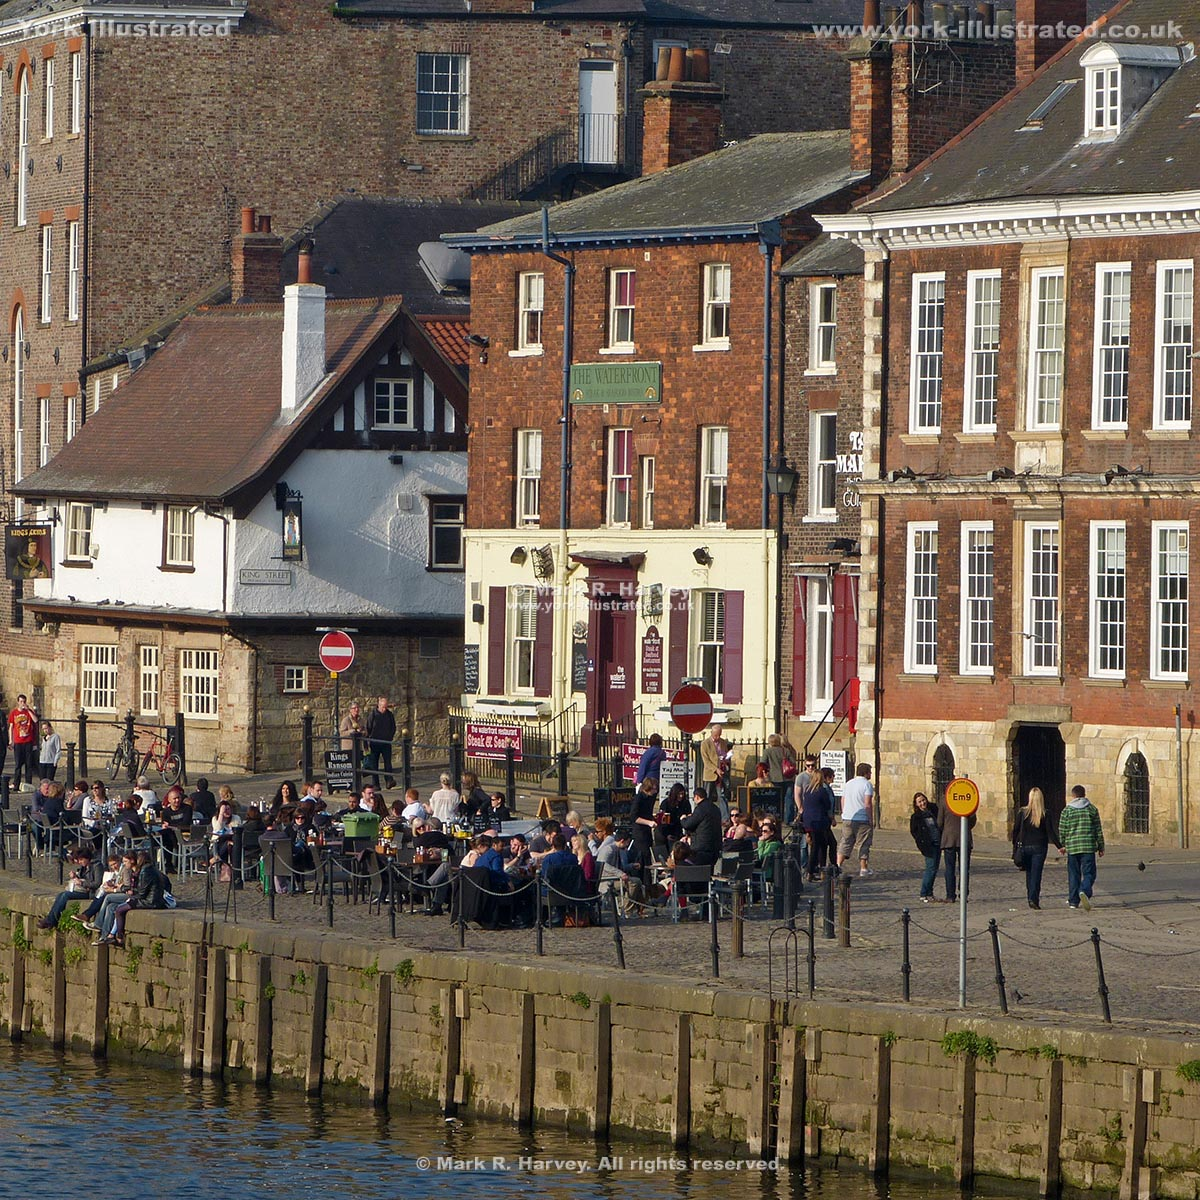 Photograph: The River Ouse, Cumberland House and people relaxing on King's Staith (York).